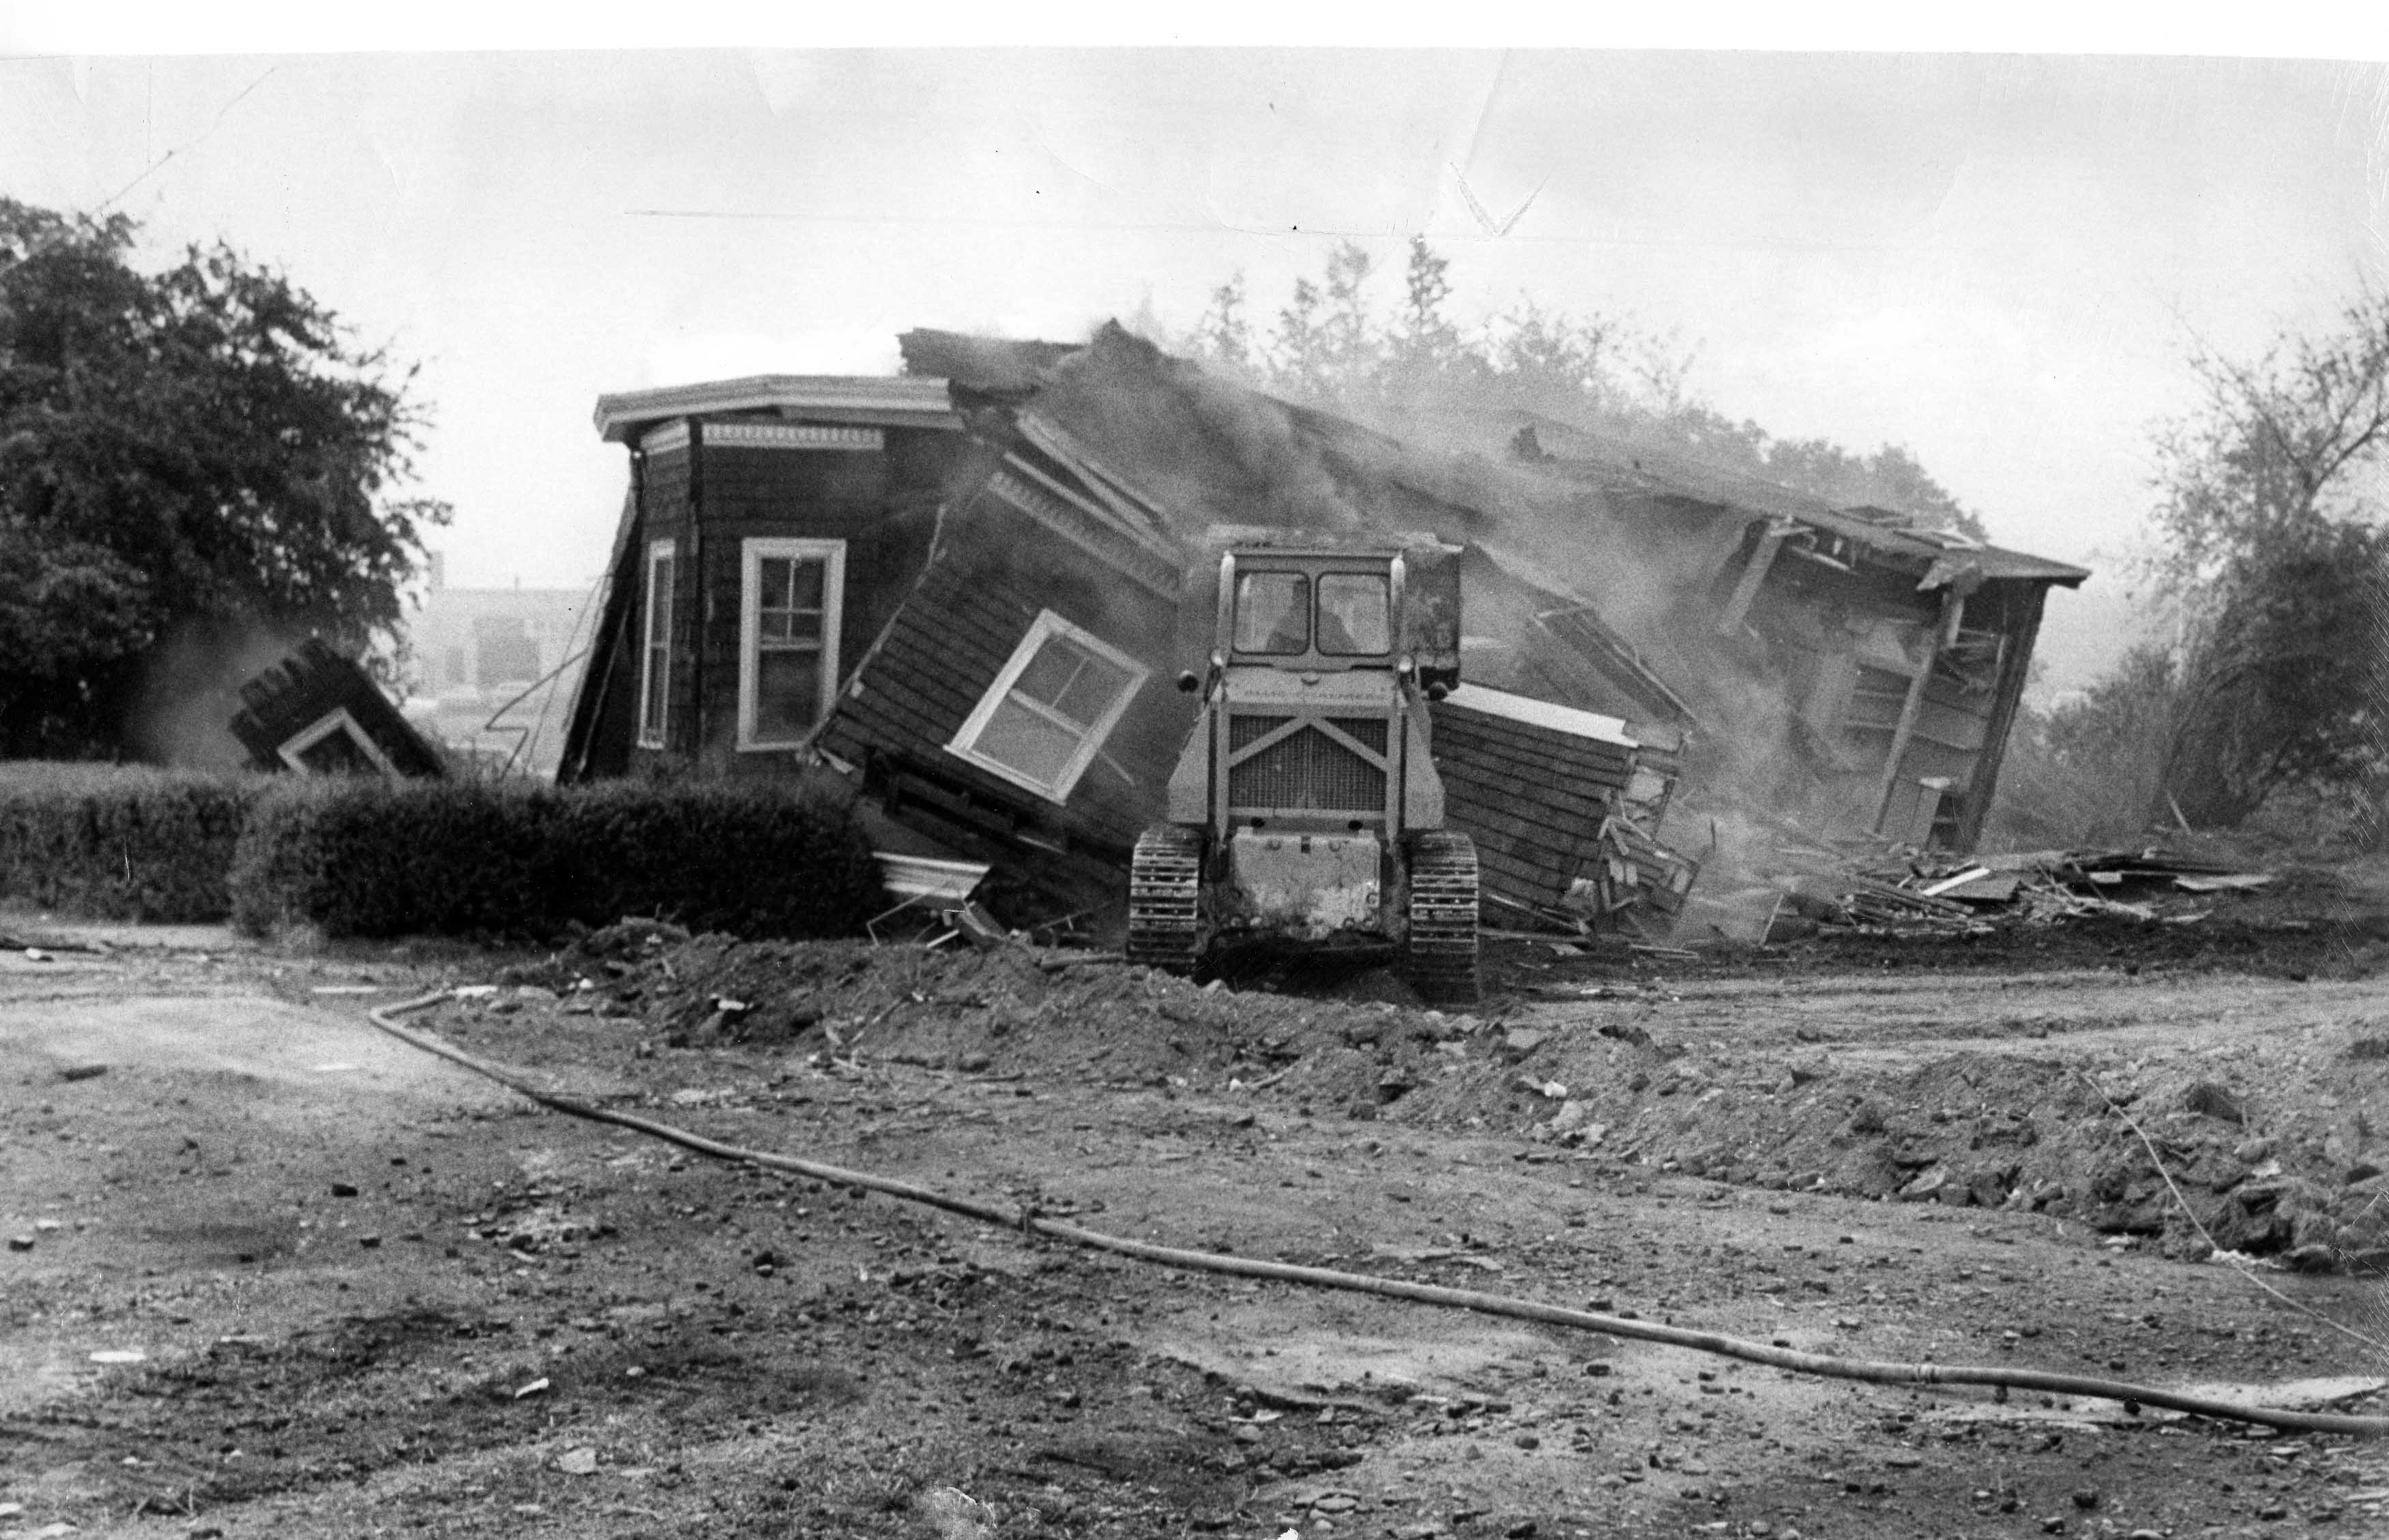 BarrysCorner 1969 Demolition1